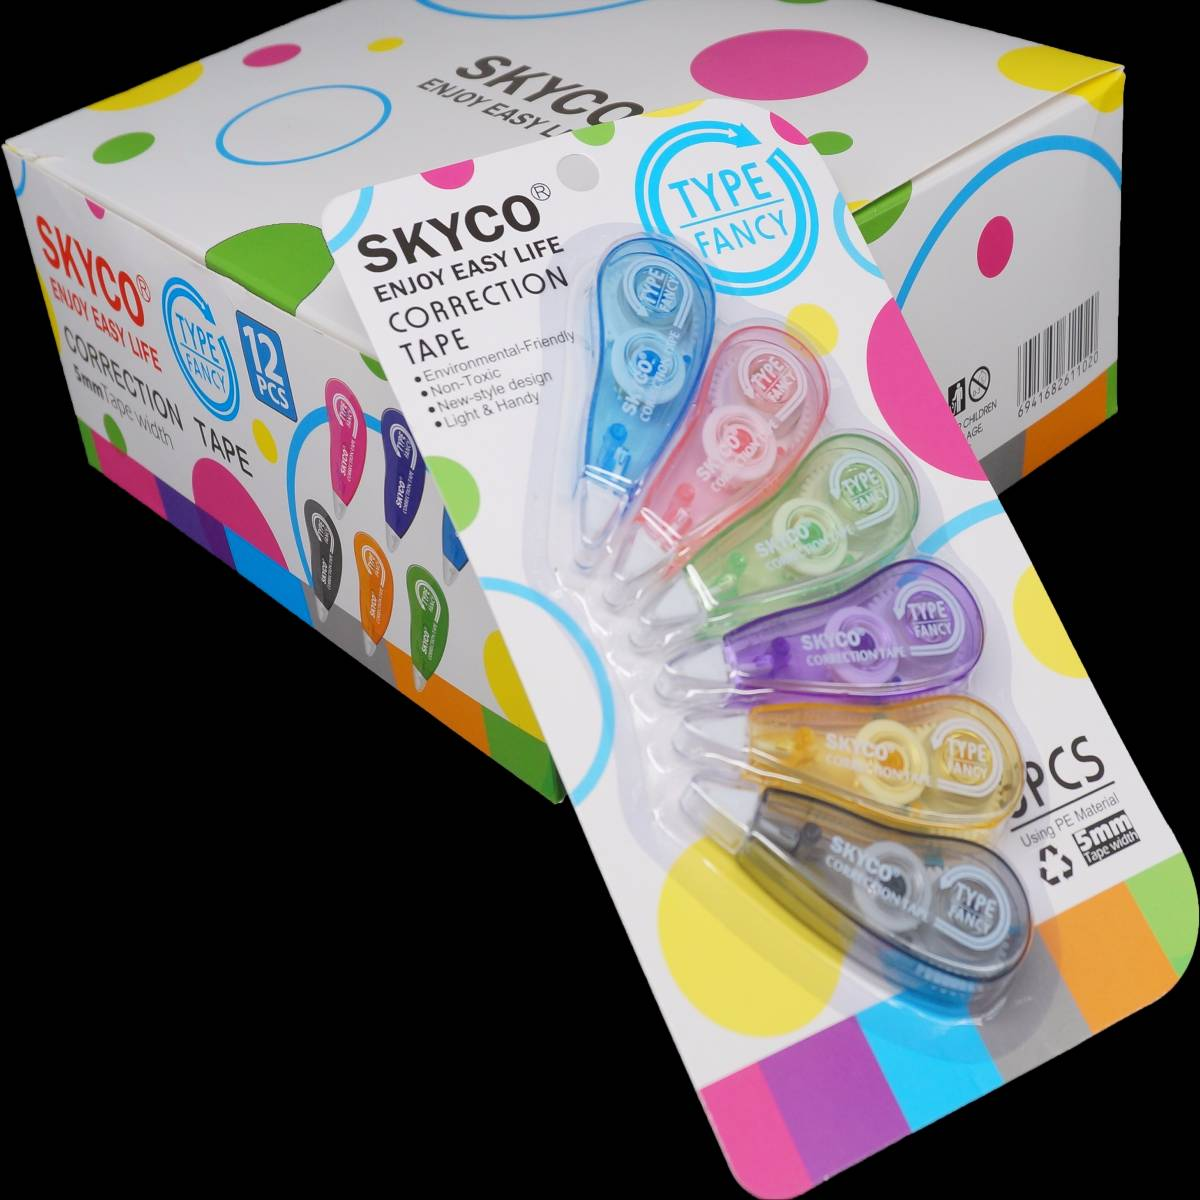 Correction Tape Skyco Fancy Per Set1